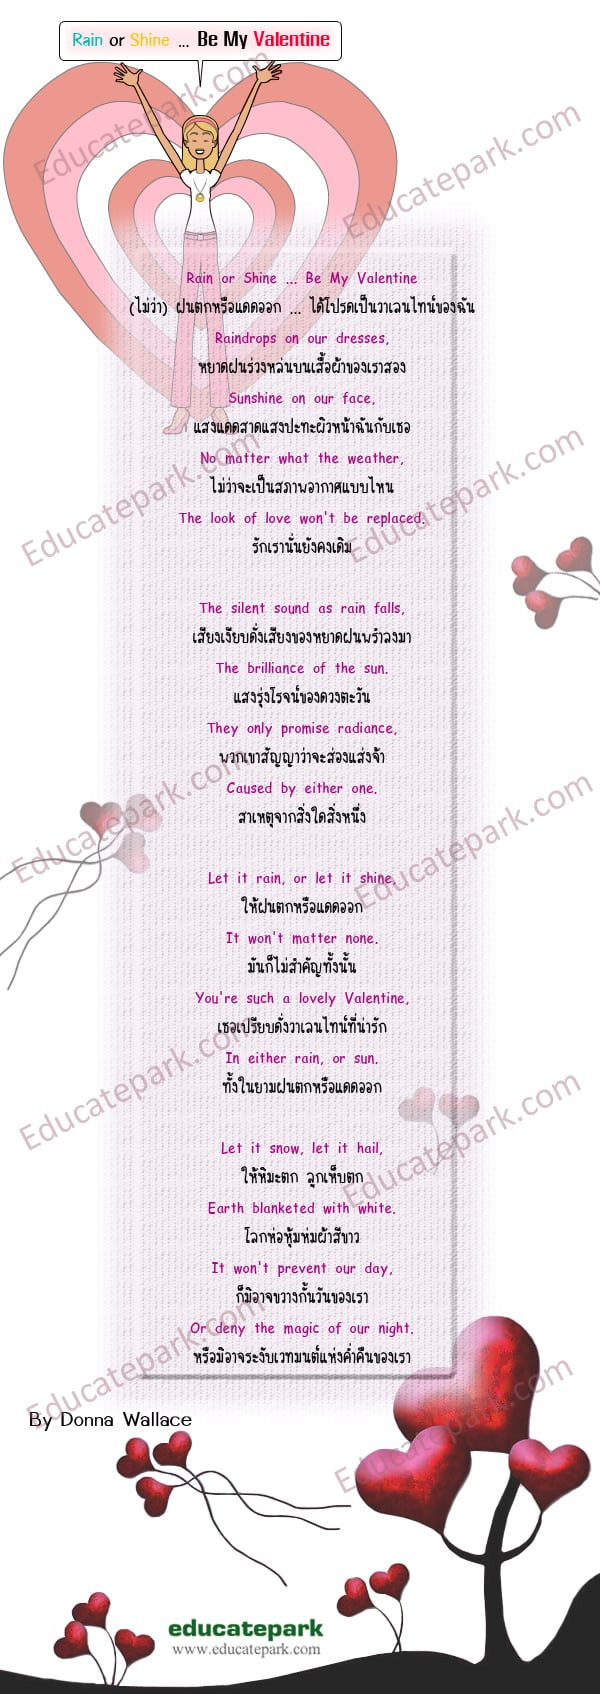 บทกลอน Rain or Shine be My Valentine - Donna Wallace